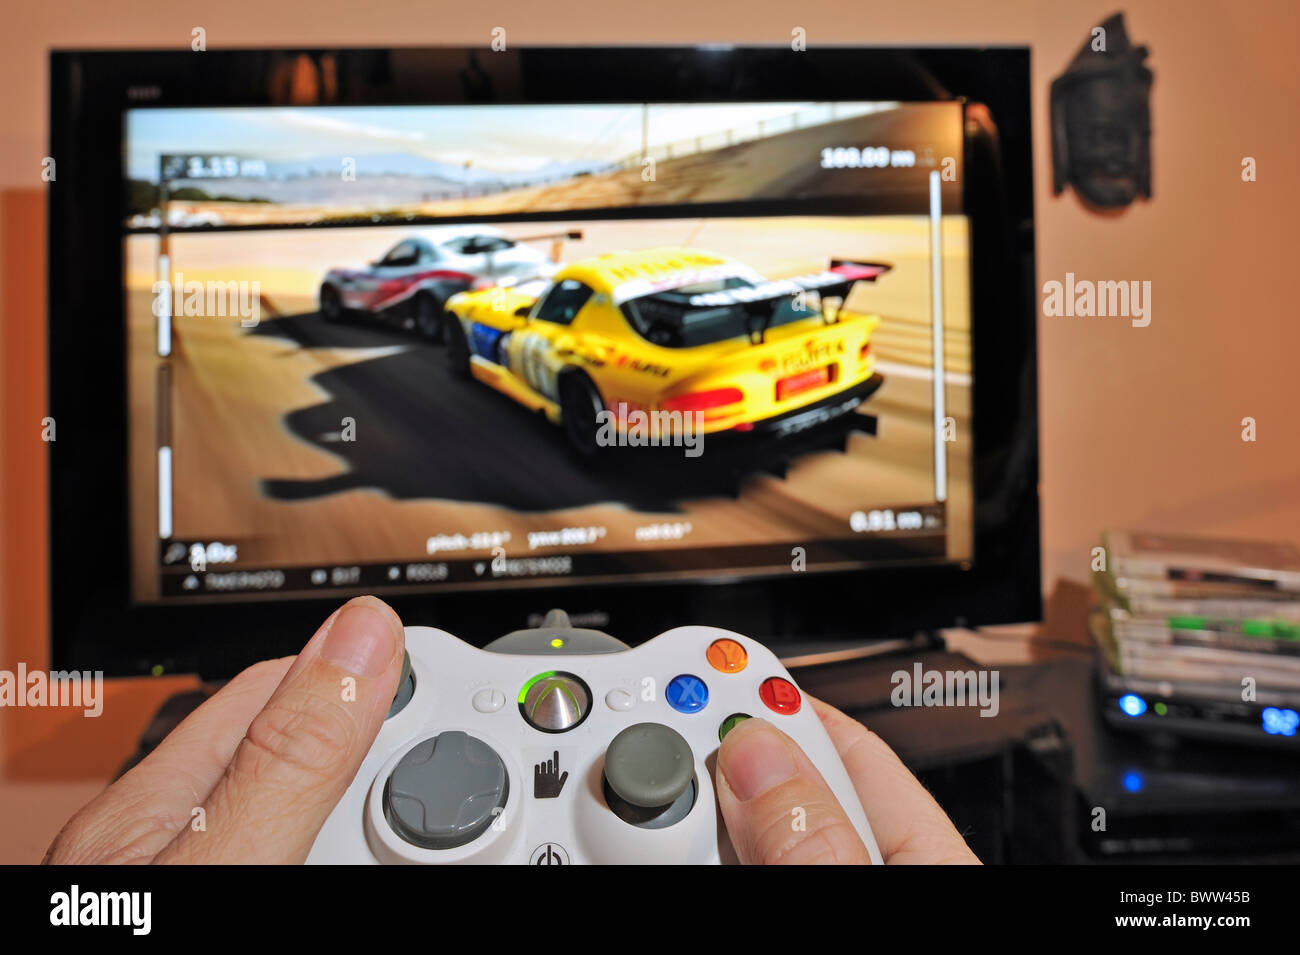 Hands holding controller in front of television screen showing cars in racing game - Stock Image